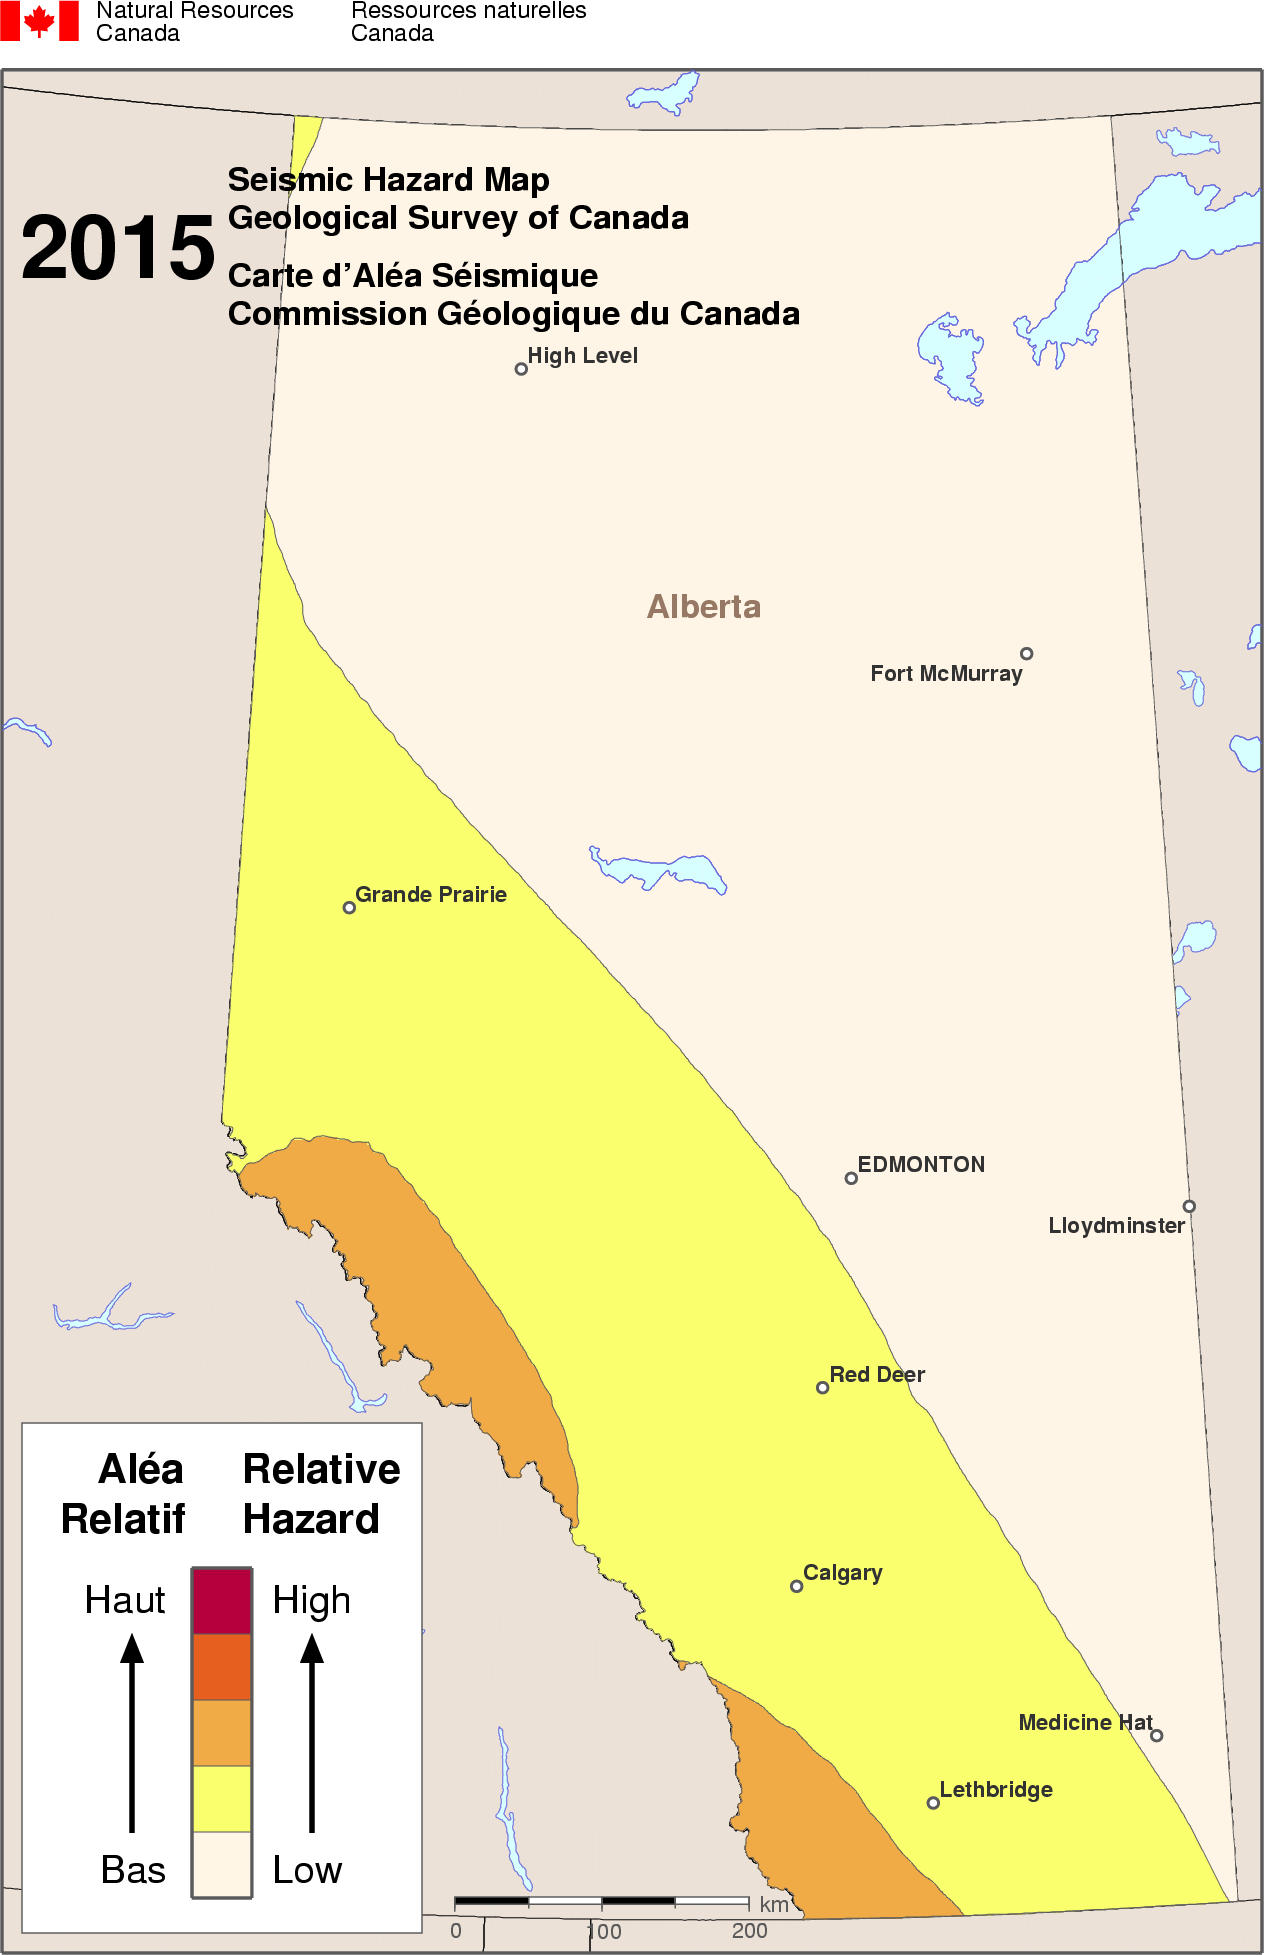 Map Of Western Canada Provinces.Simplified Seismic Hazard Map For Canada The Provinces And Territories